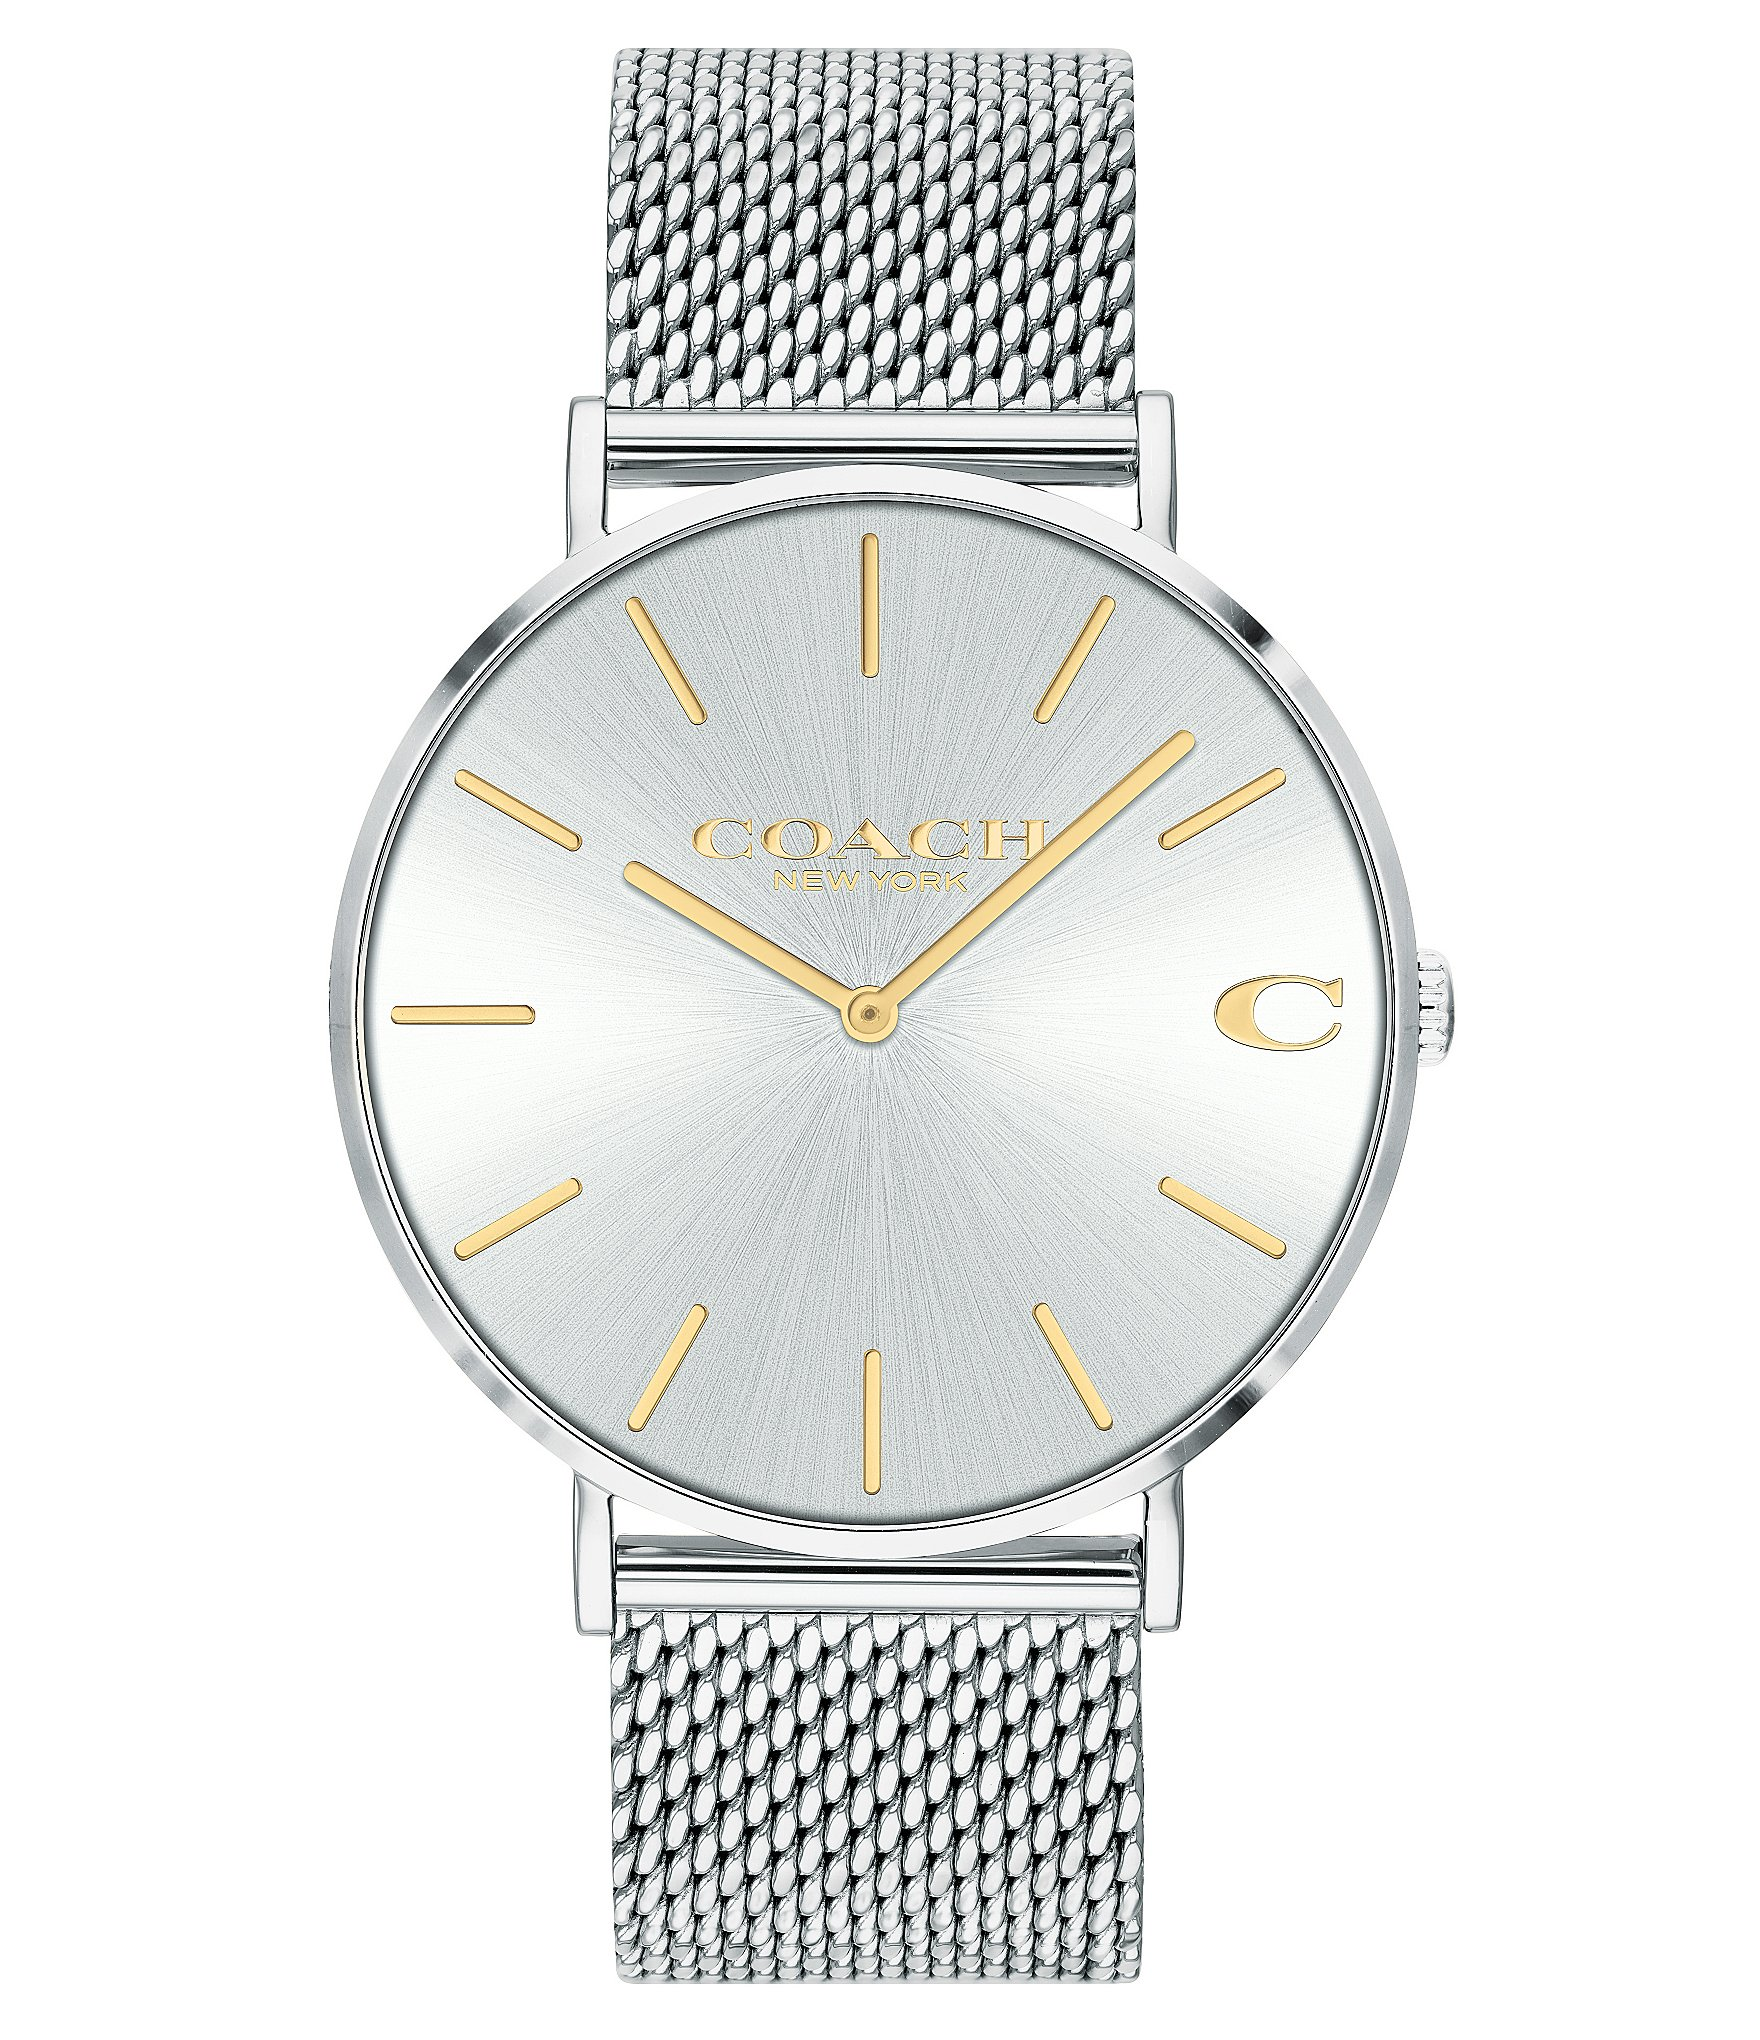 0c6a9d955bfe6 COACH Charles Men's Stainless Steel Silvertone Mesh Bracelet Watch